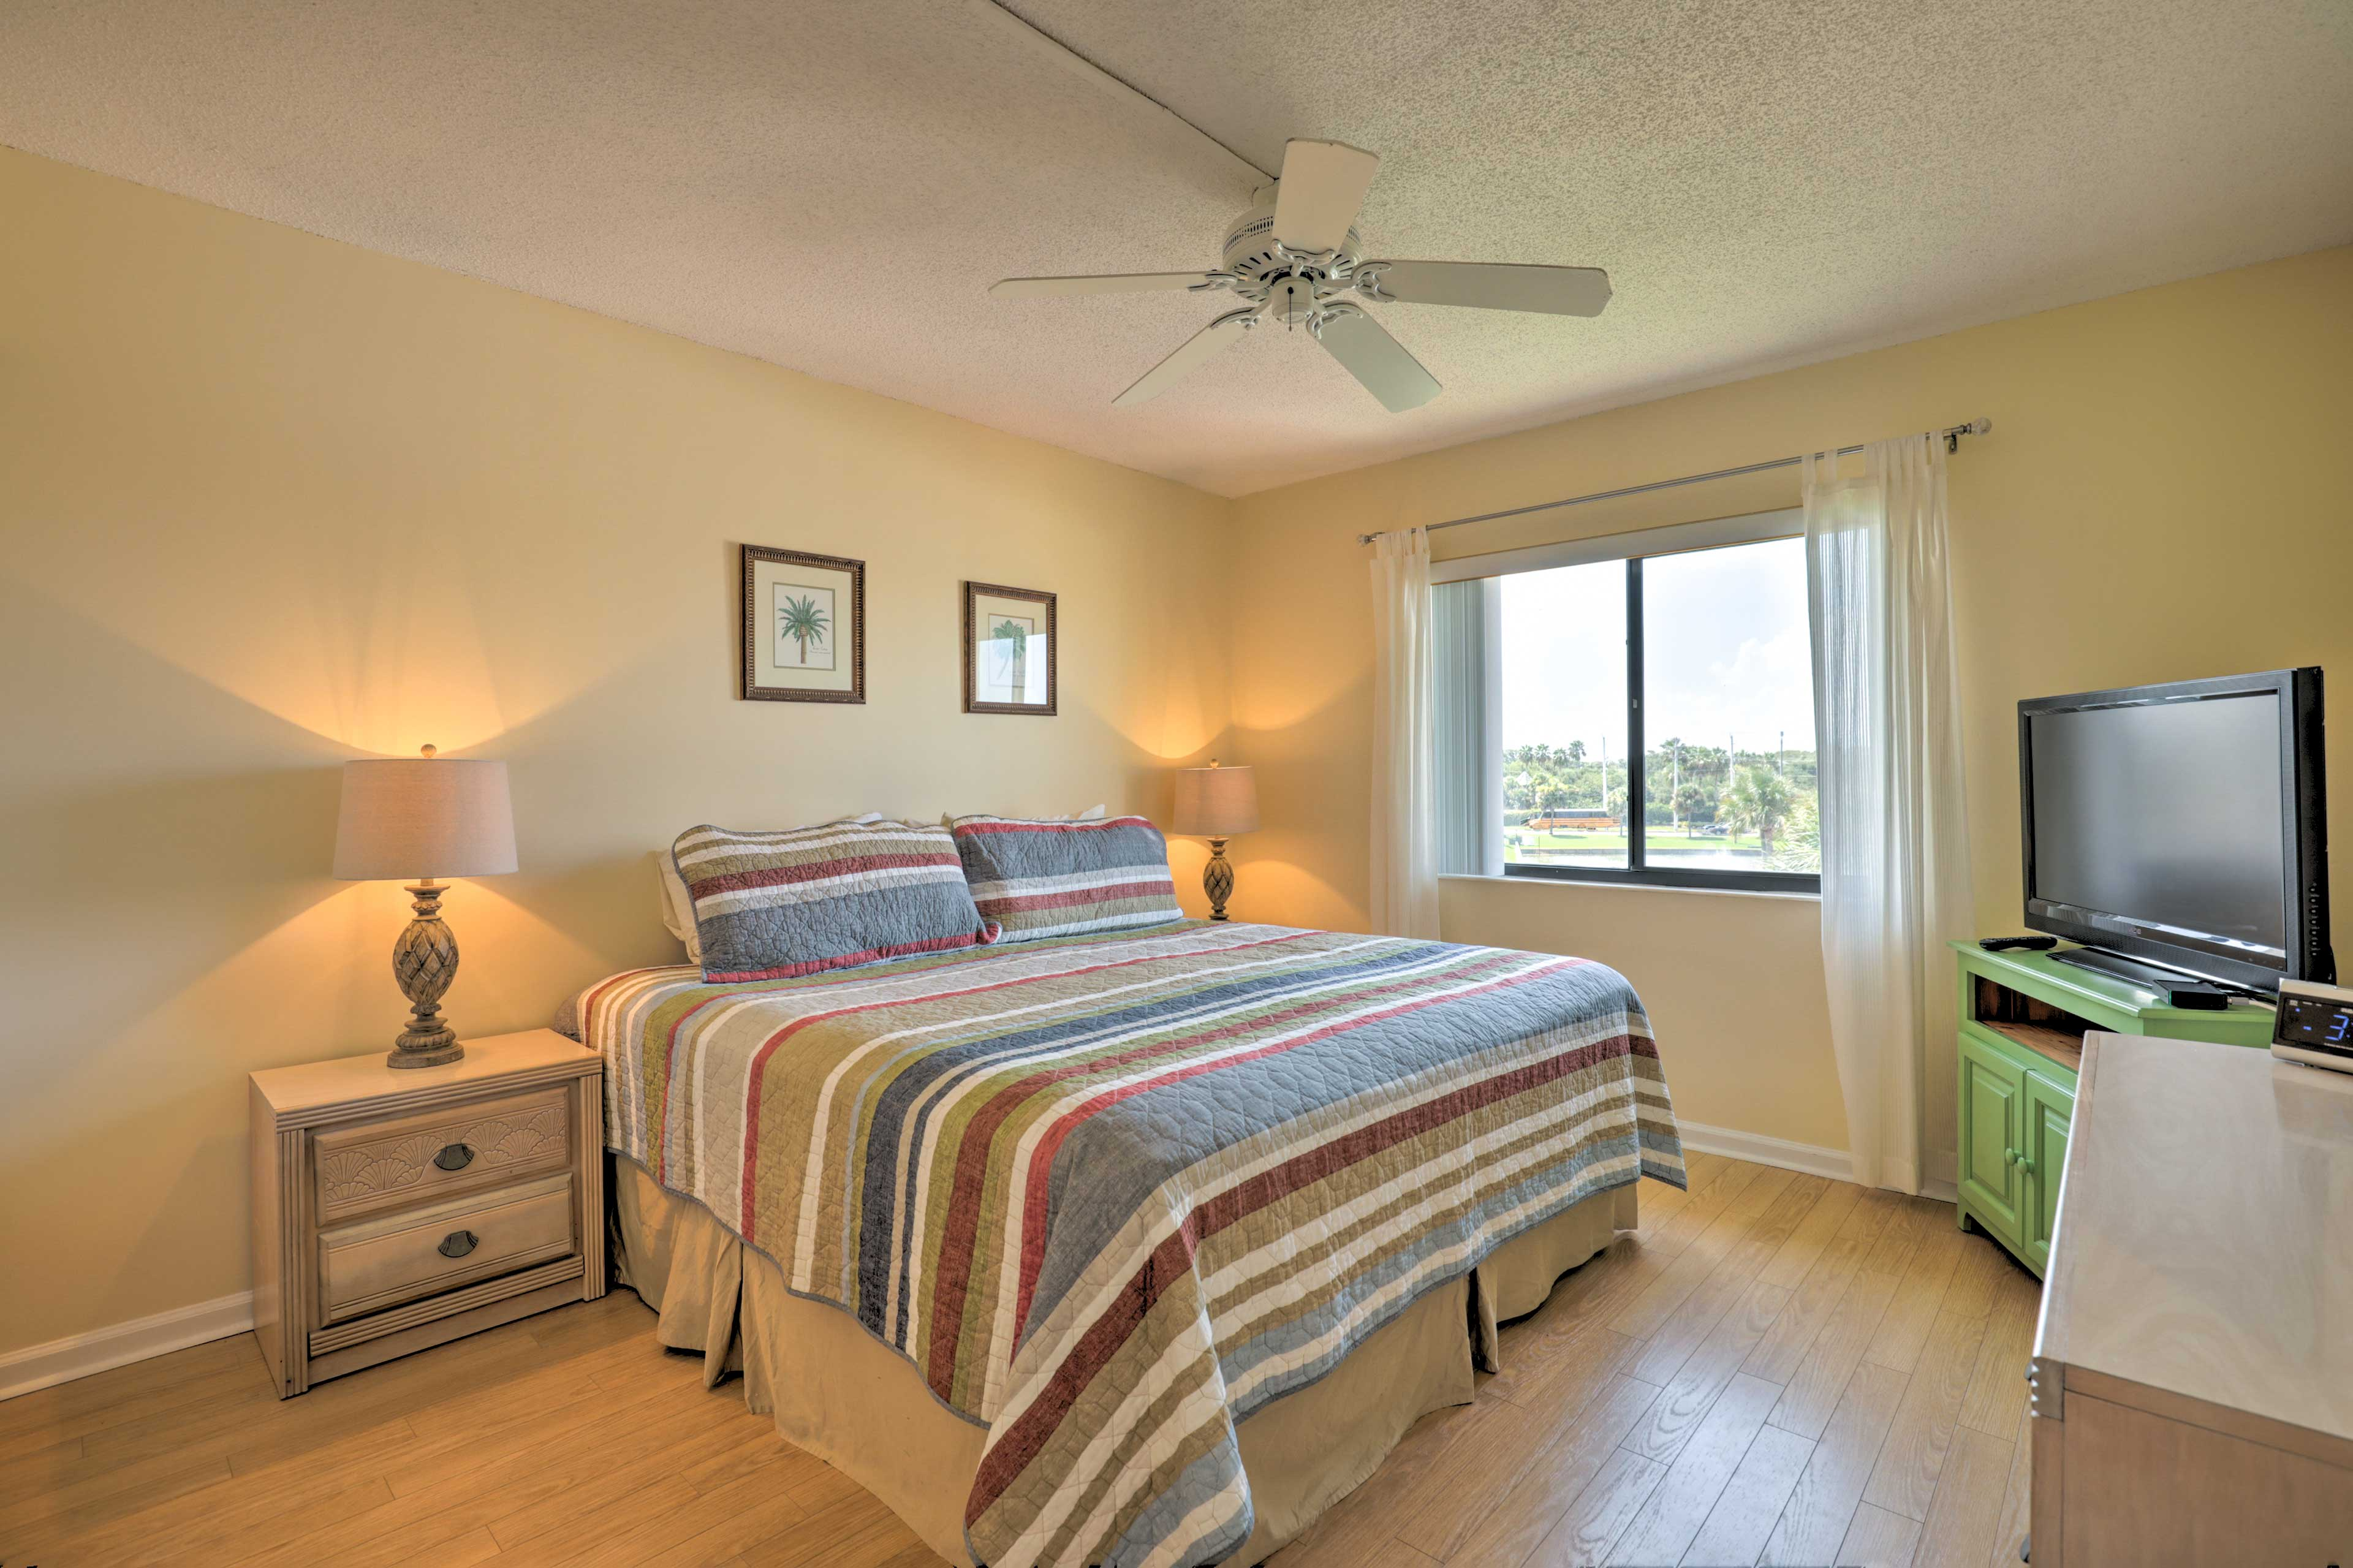 Fall asleep to a show on the 37-inch flat-screen Smart TV in the master bedroom.